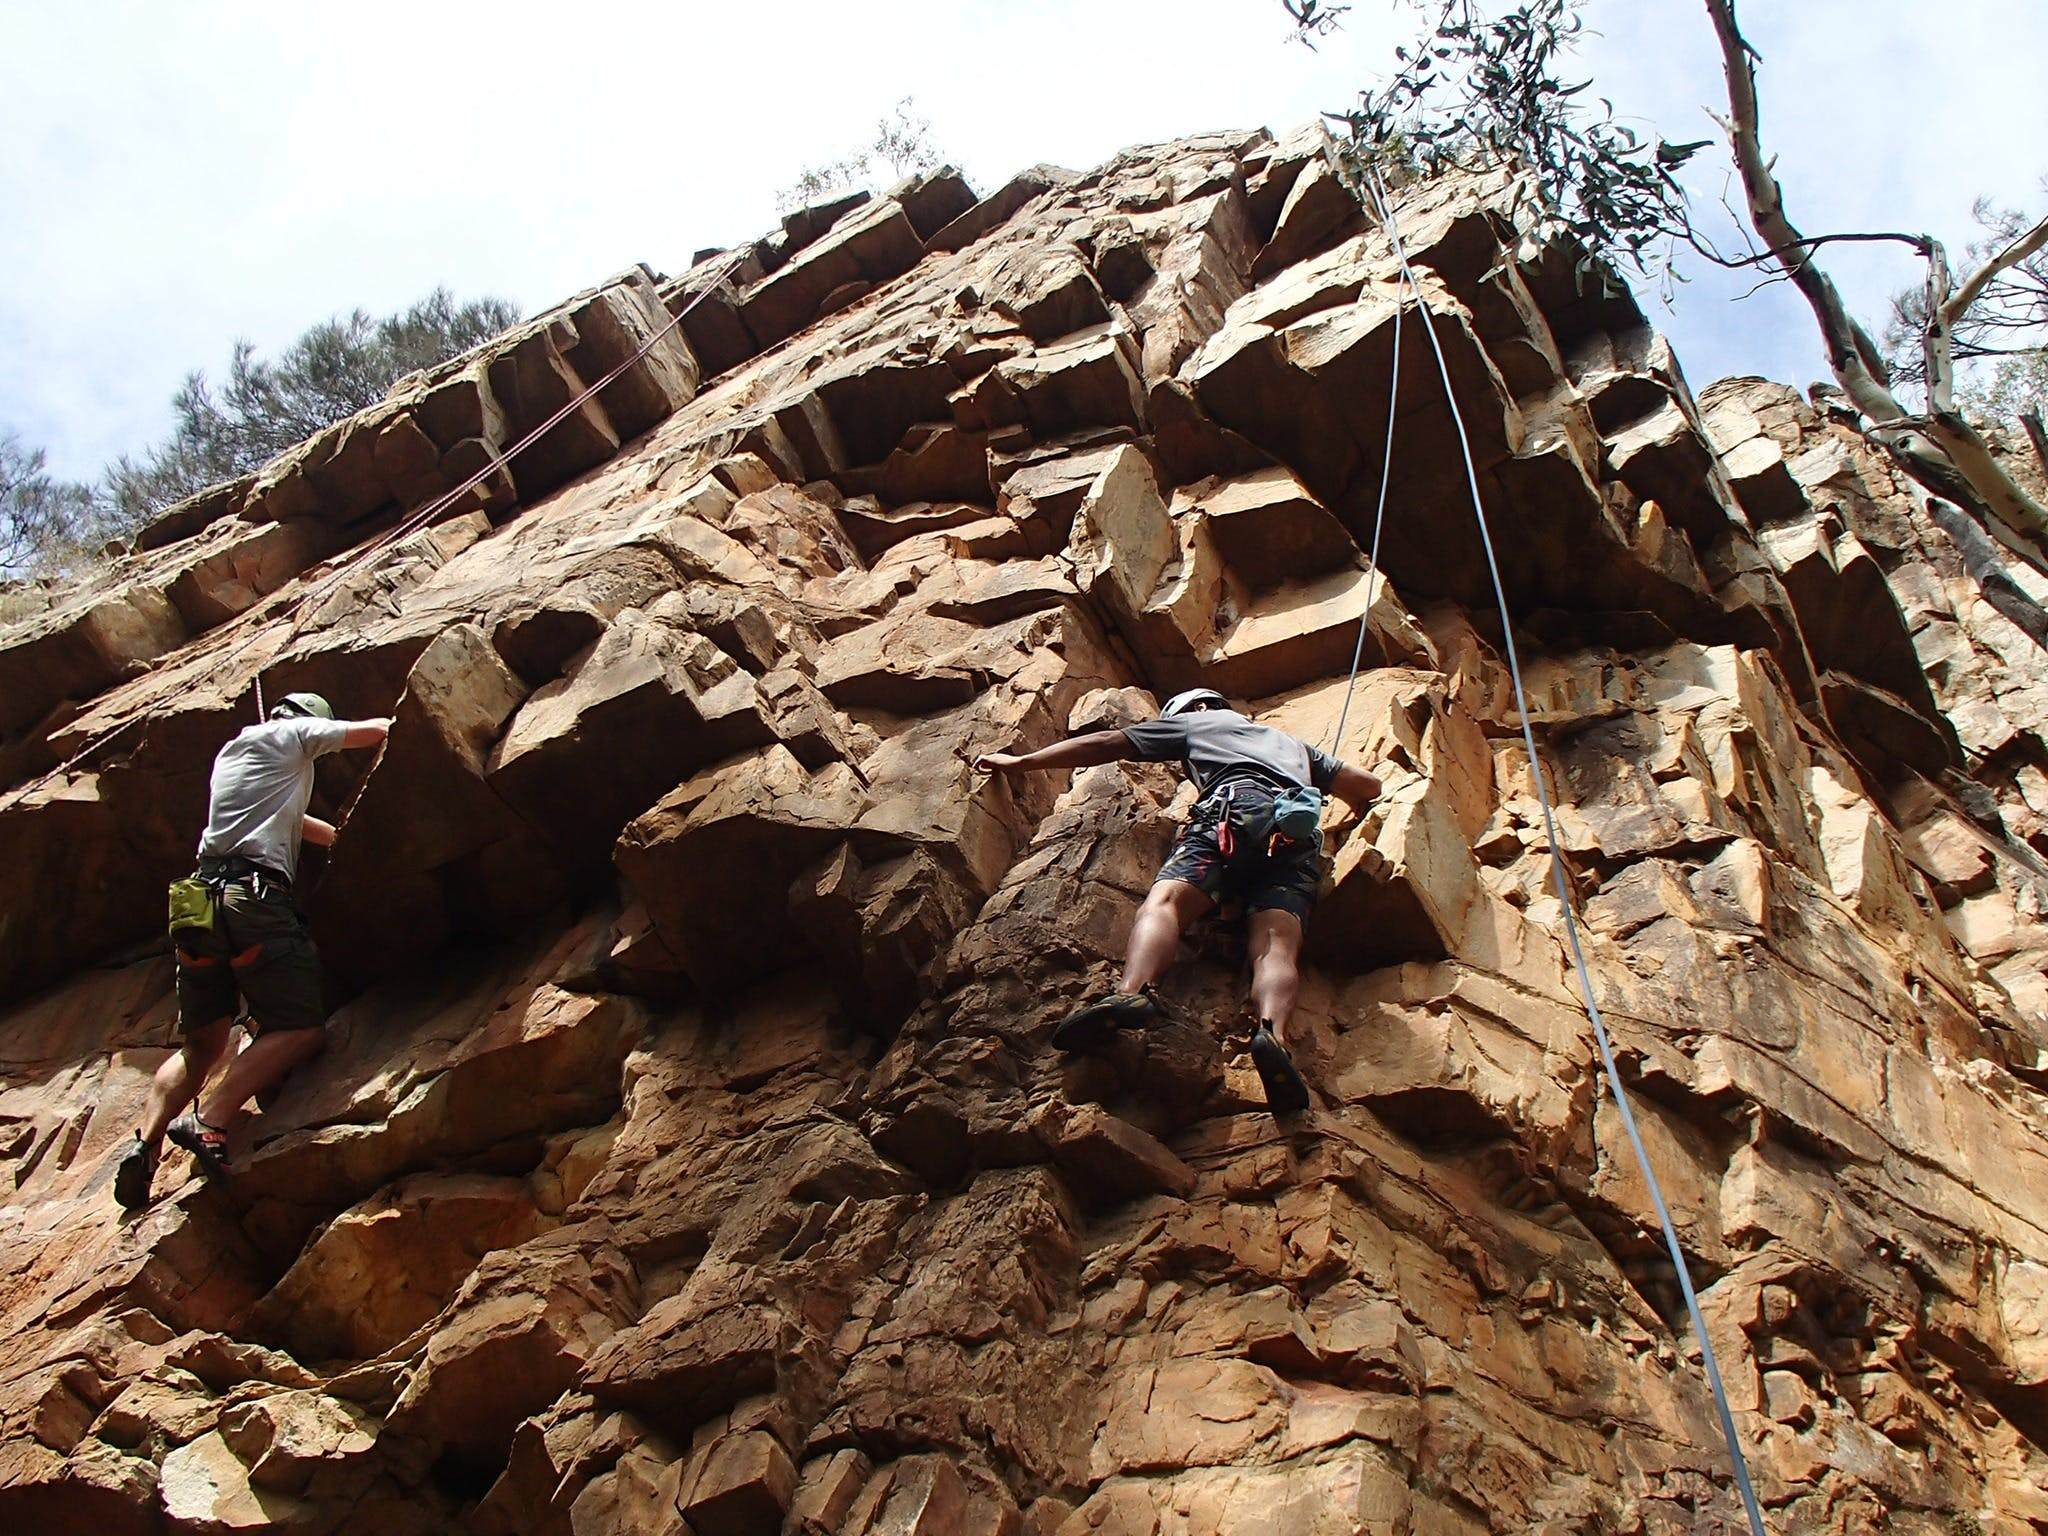 Rock Climbing in Morialta - Accommodation QLD